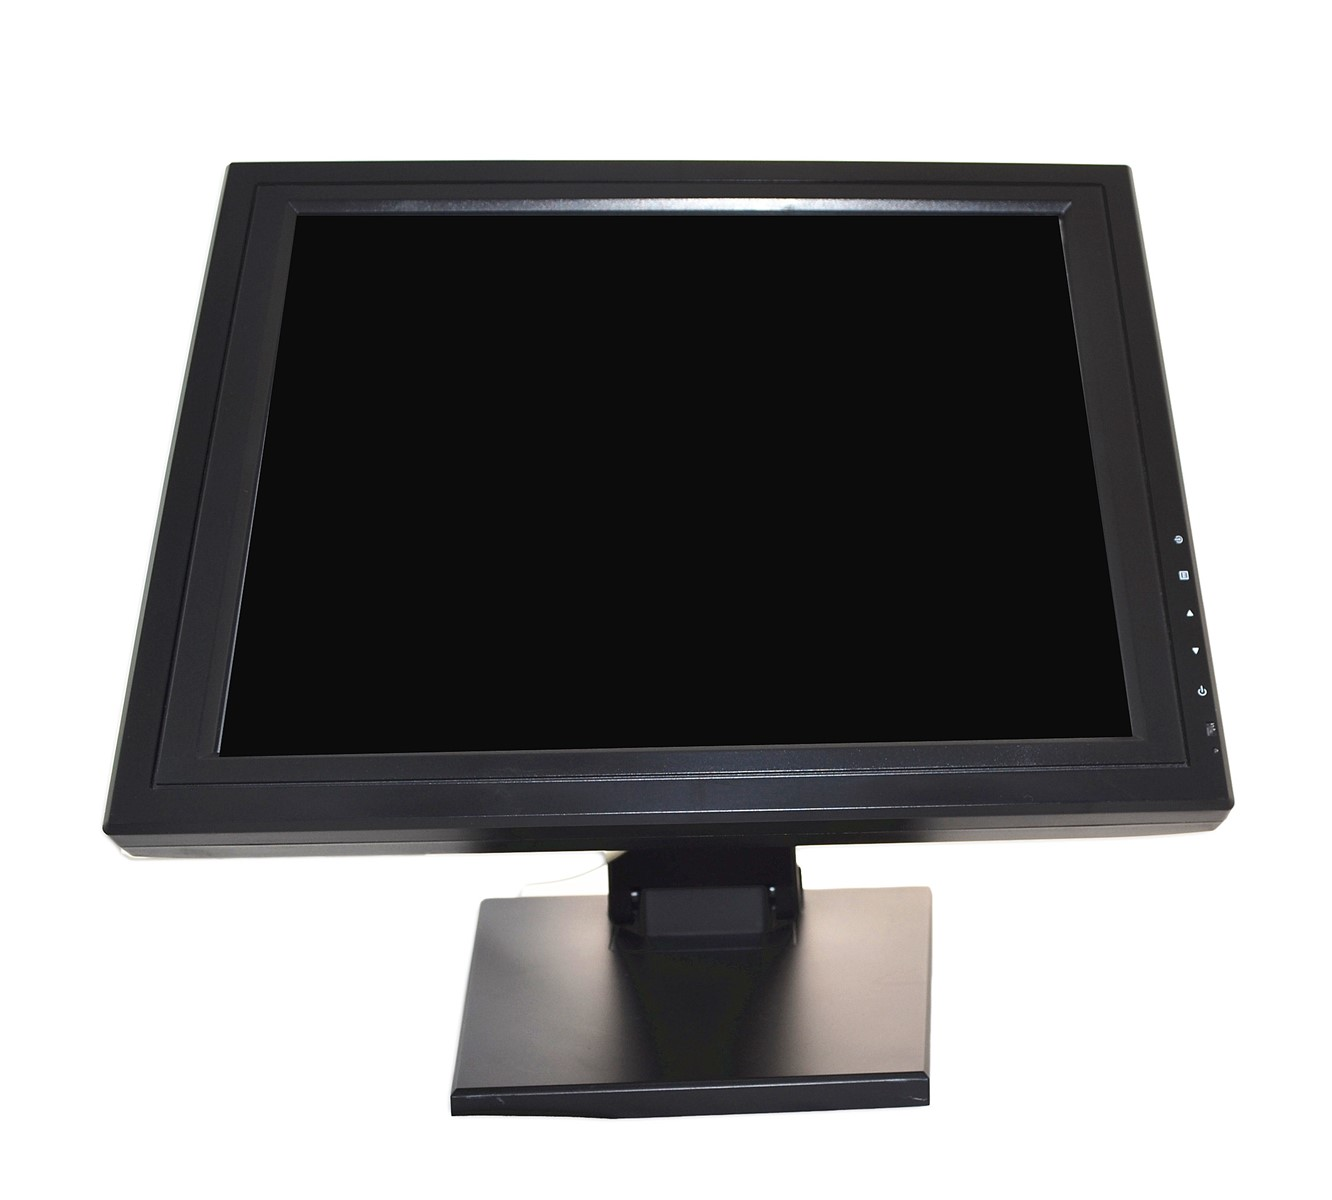 15-inch capacitive Touch panel POS Display with 1024X768 pixels